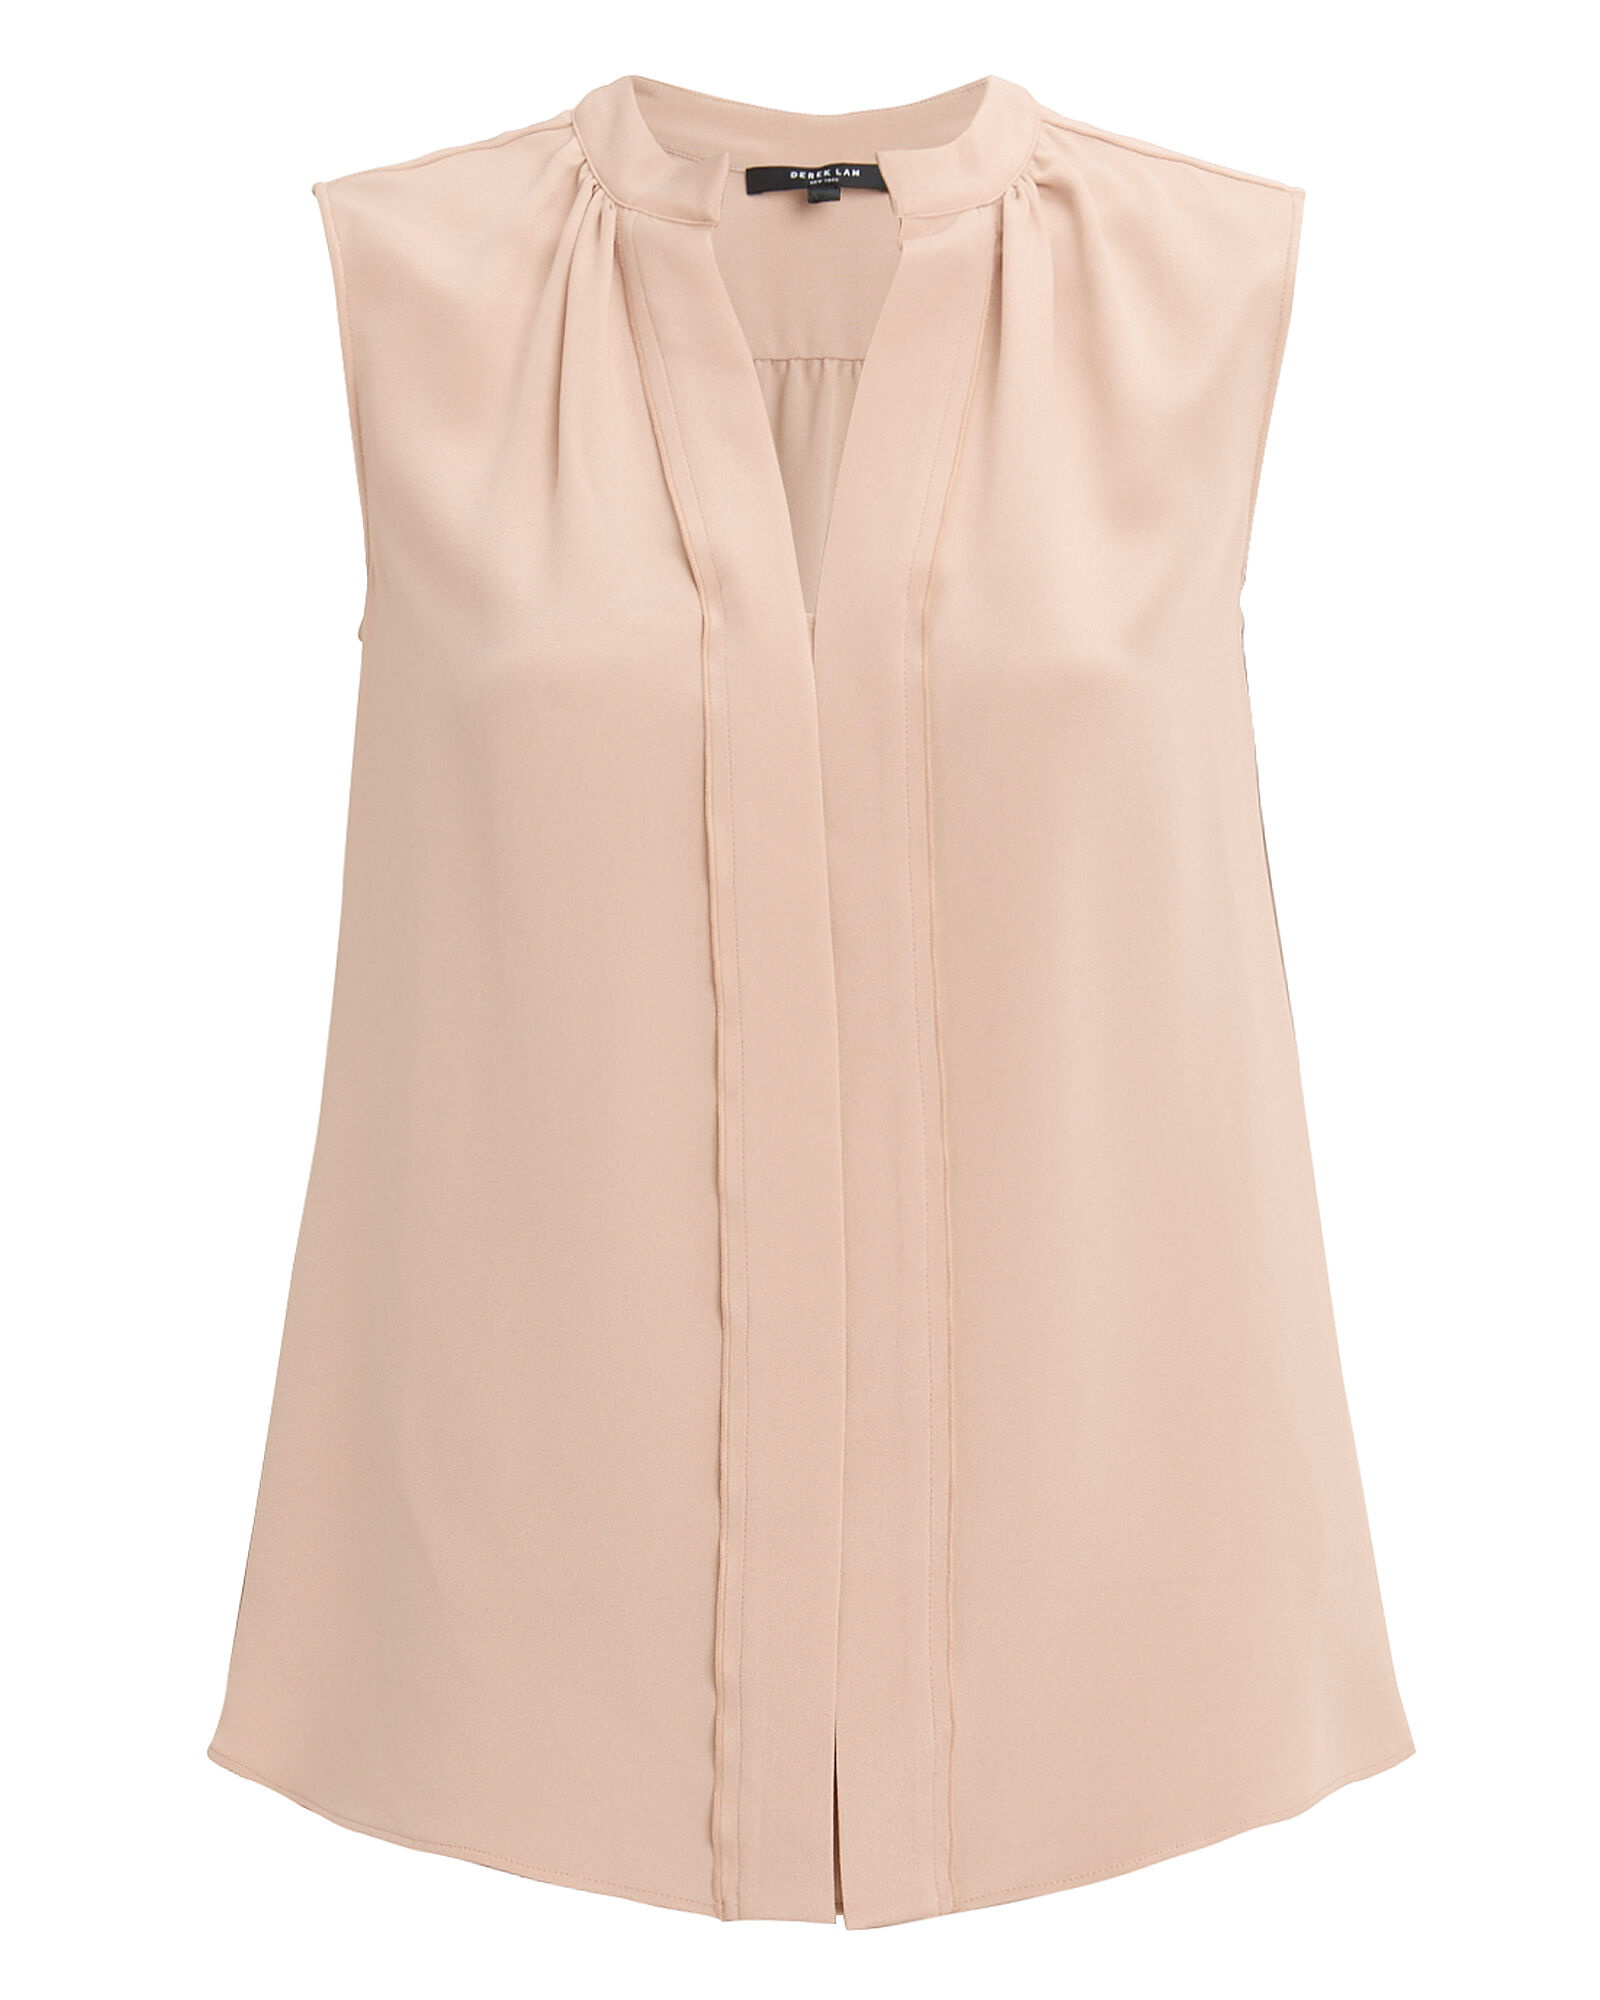 Kara Blouse, BLUSH, hi-res